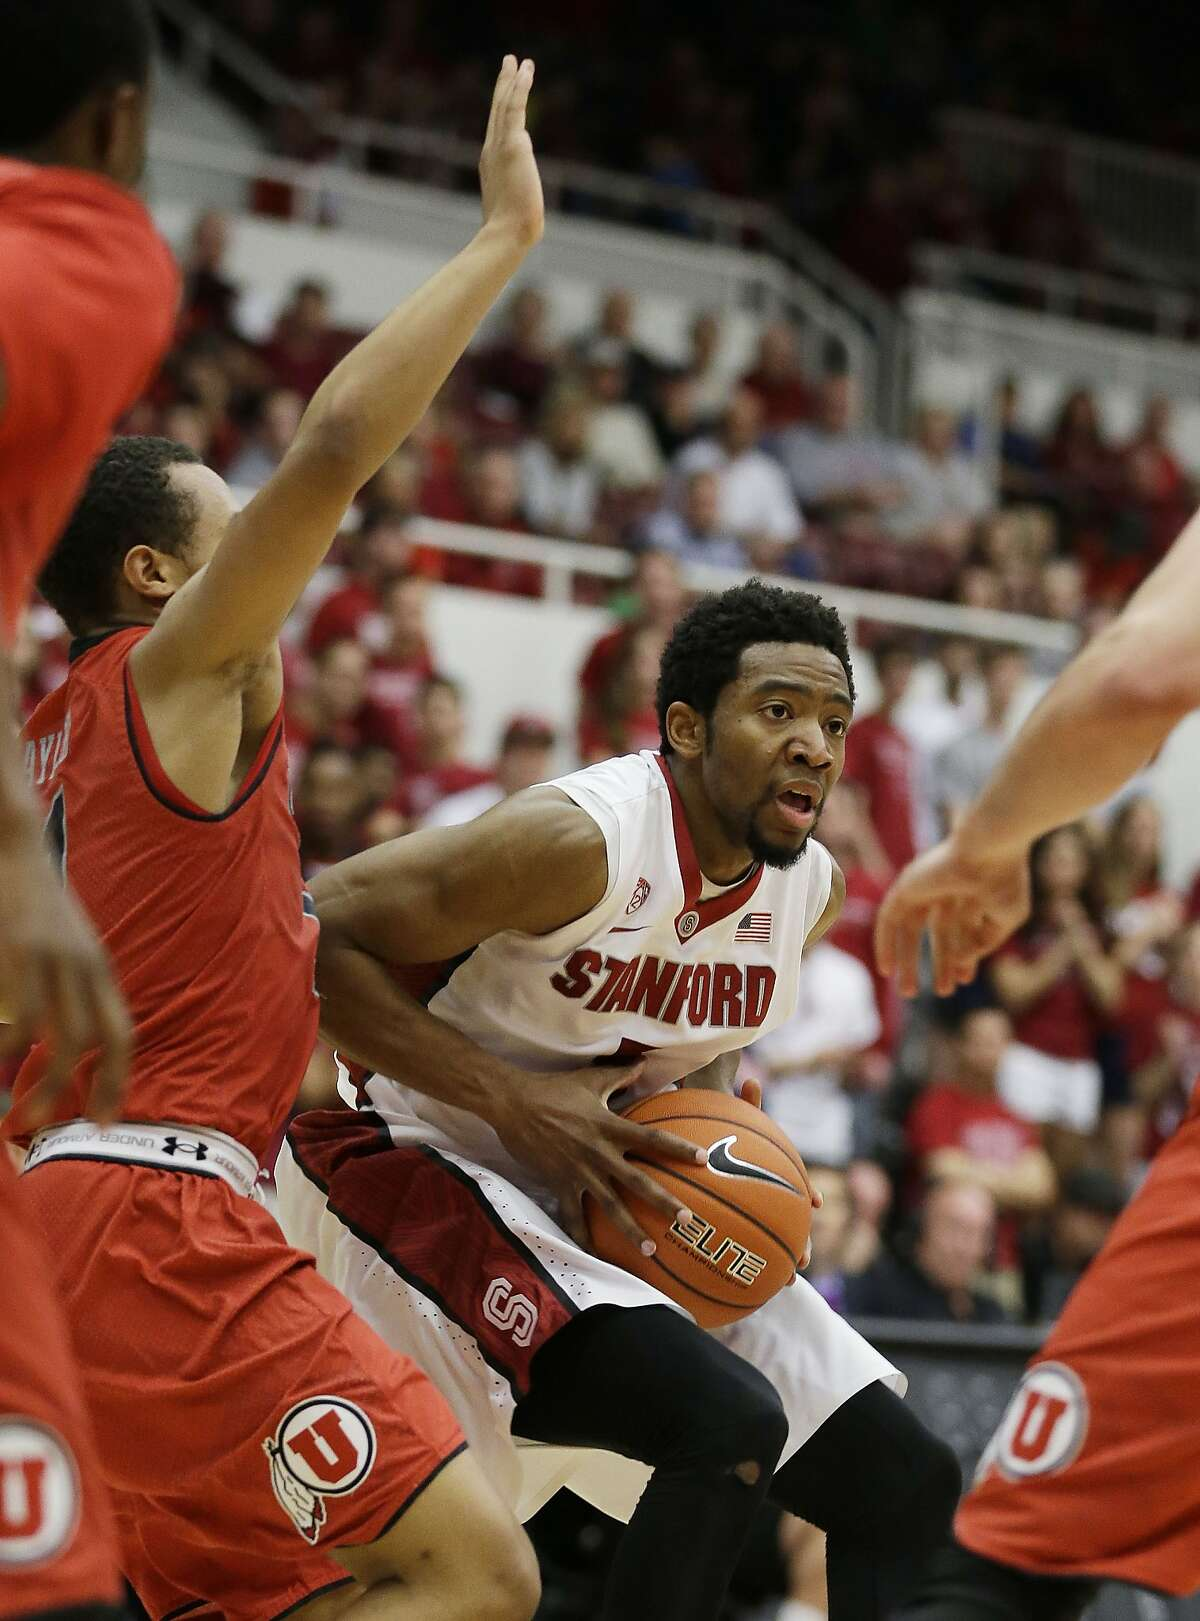 Stanford guard Chasson Randle, right, goes to the basket as Utah guard Brandon Taylor, left, looks on during the second half of their NCAA college basketball game Saturday, March 8, 2014, in Stanford, Calif. Stanford won the game 61-60. (AP Photo/Eric Risberg)